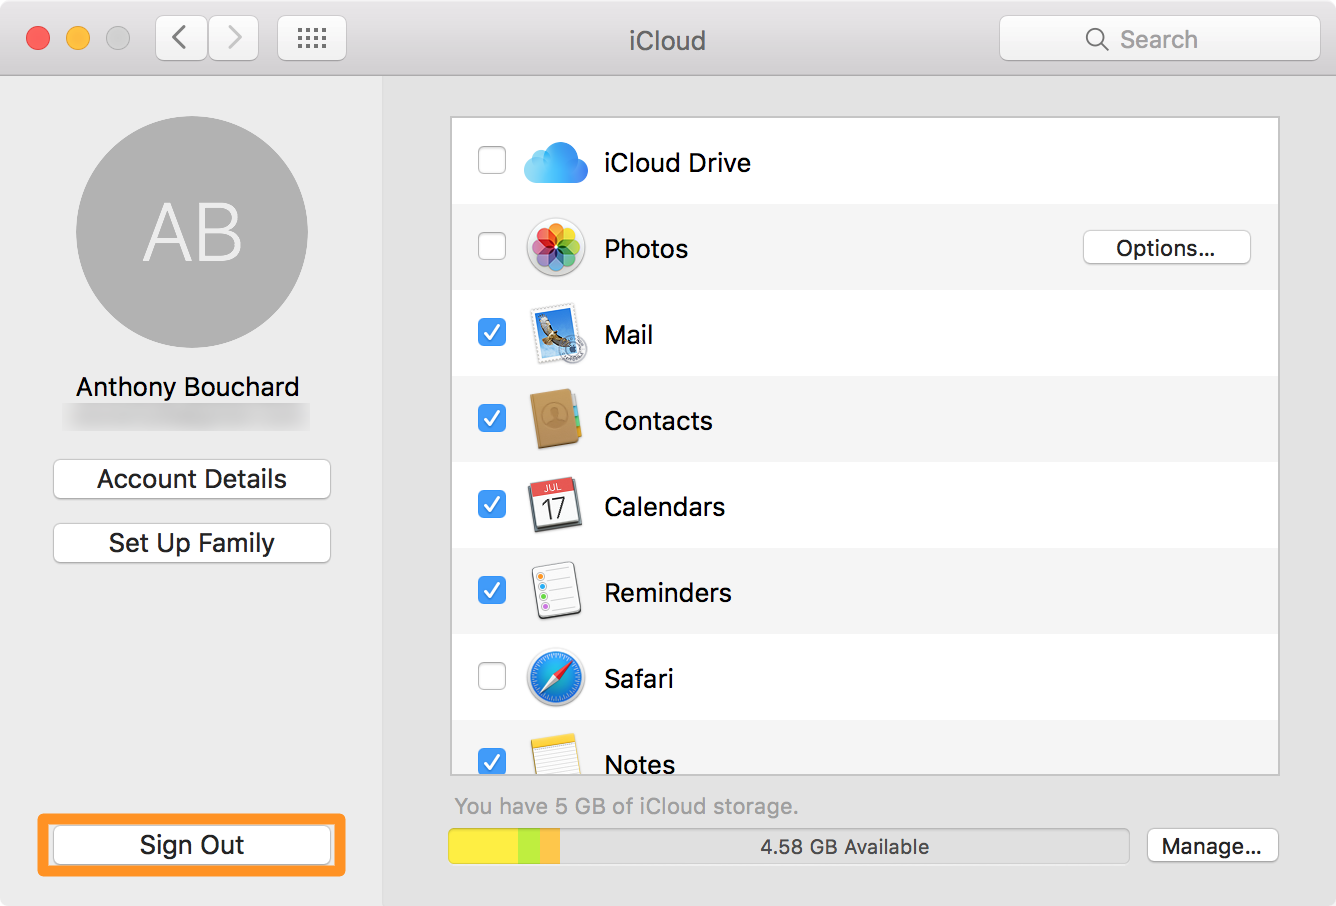 Sign out of iCloud on your Mac